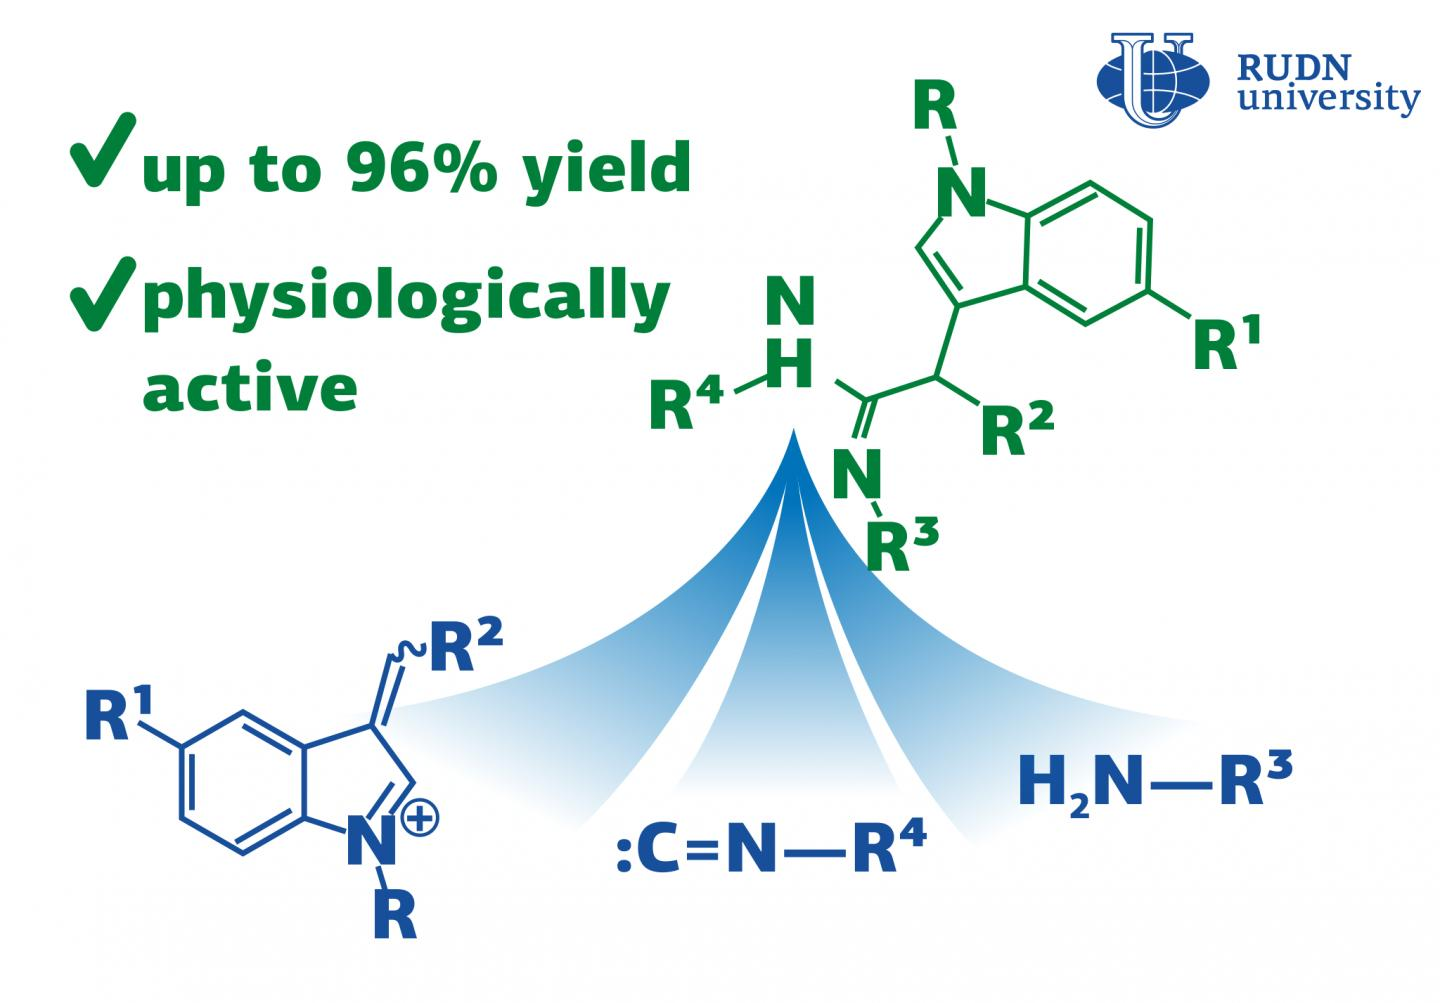 RUDN University Chemists Propose a One-Step Synthesis of Substances for Medicine